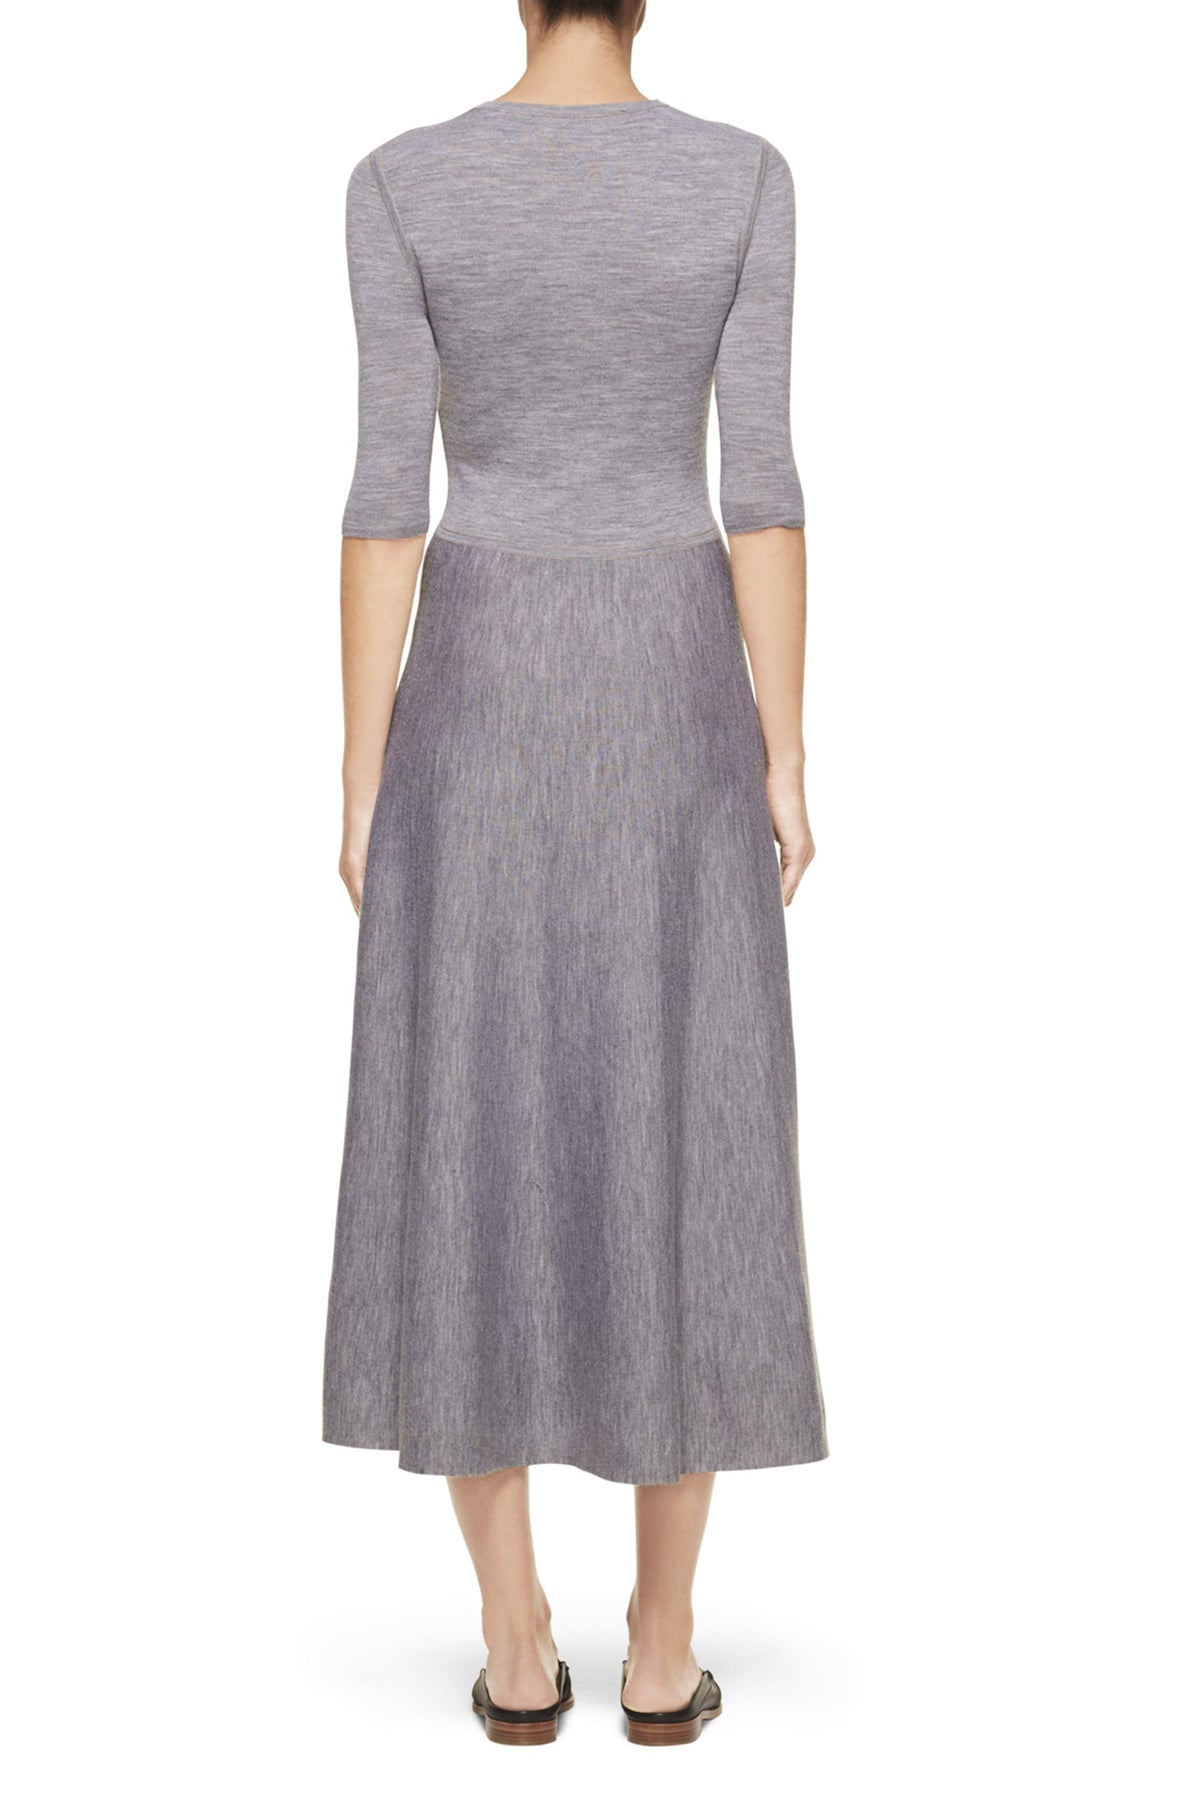 Seymore Dress